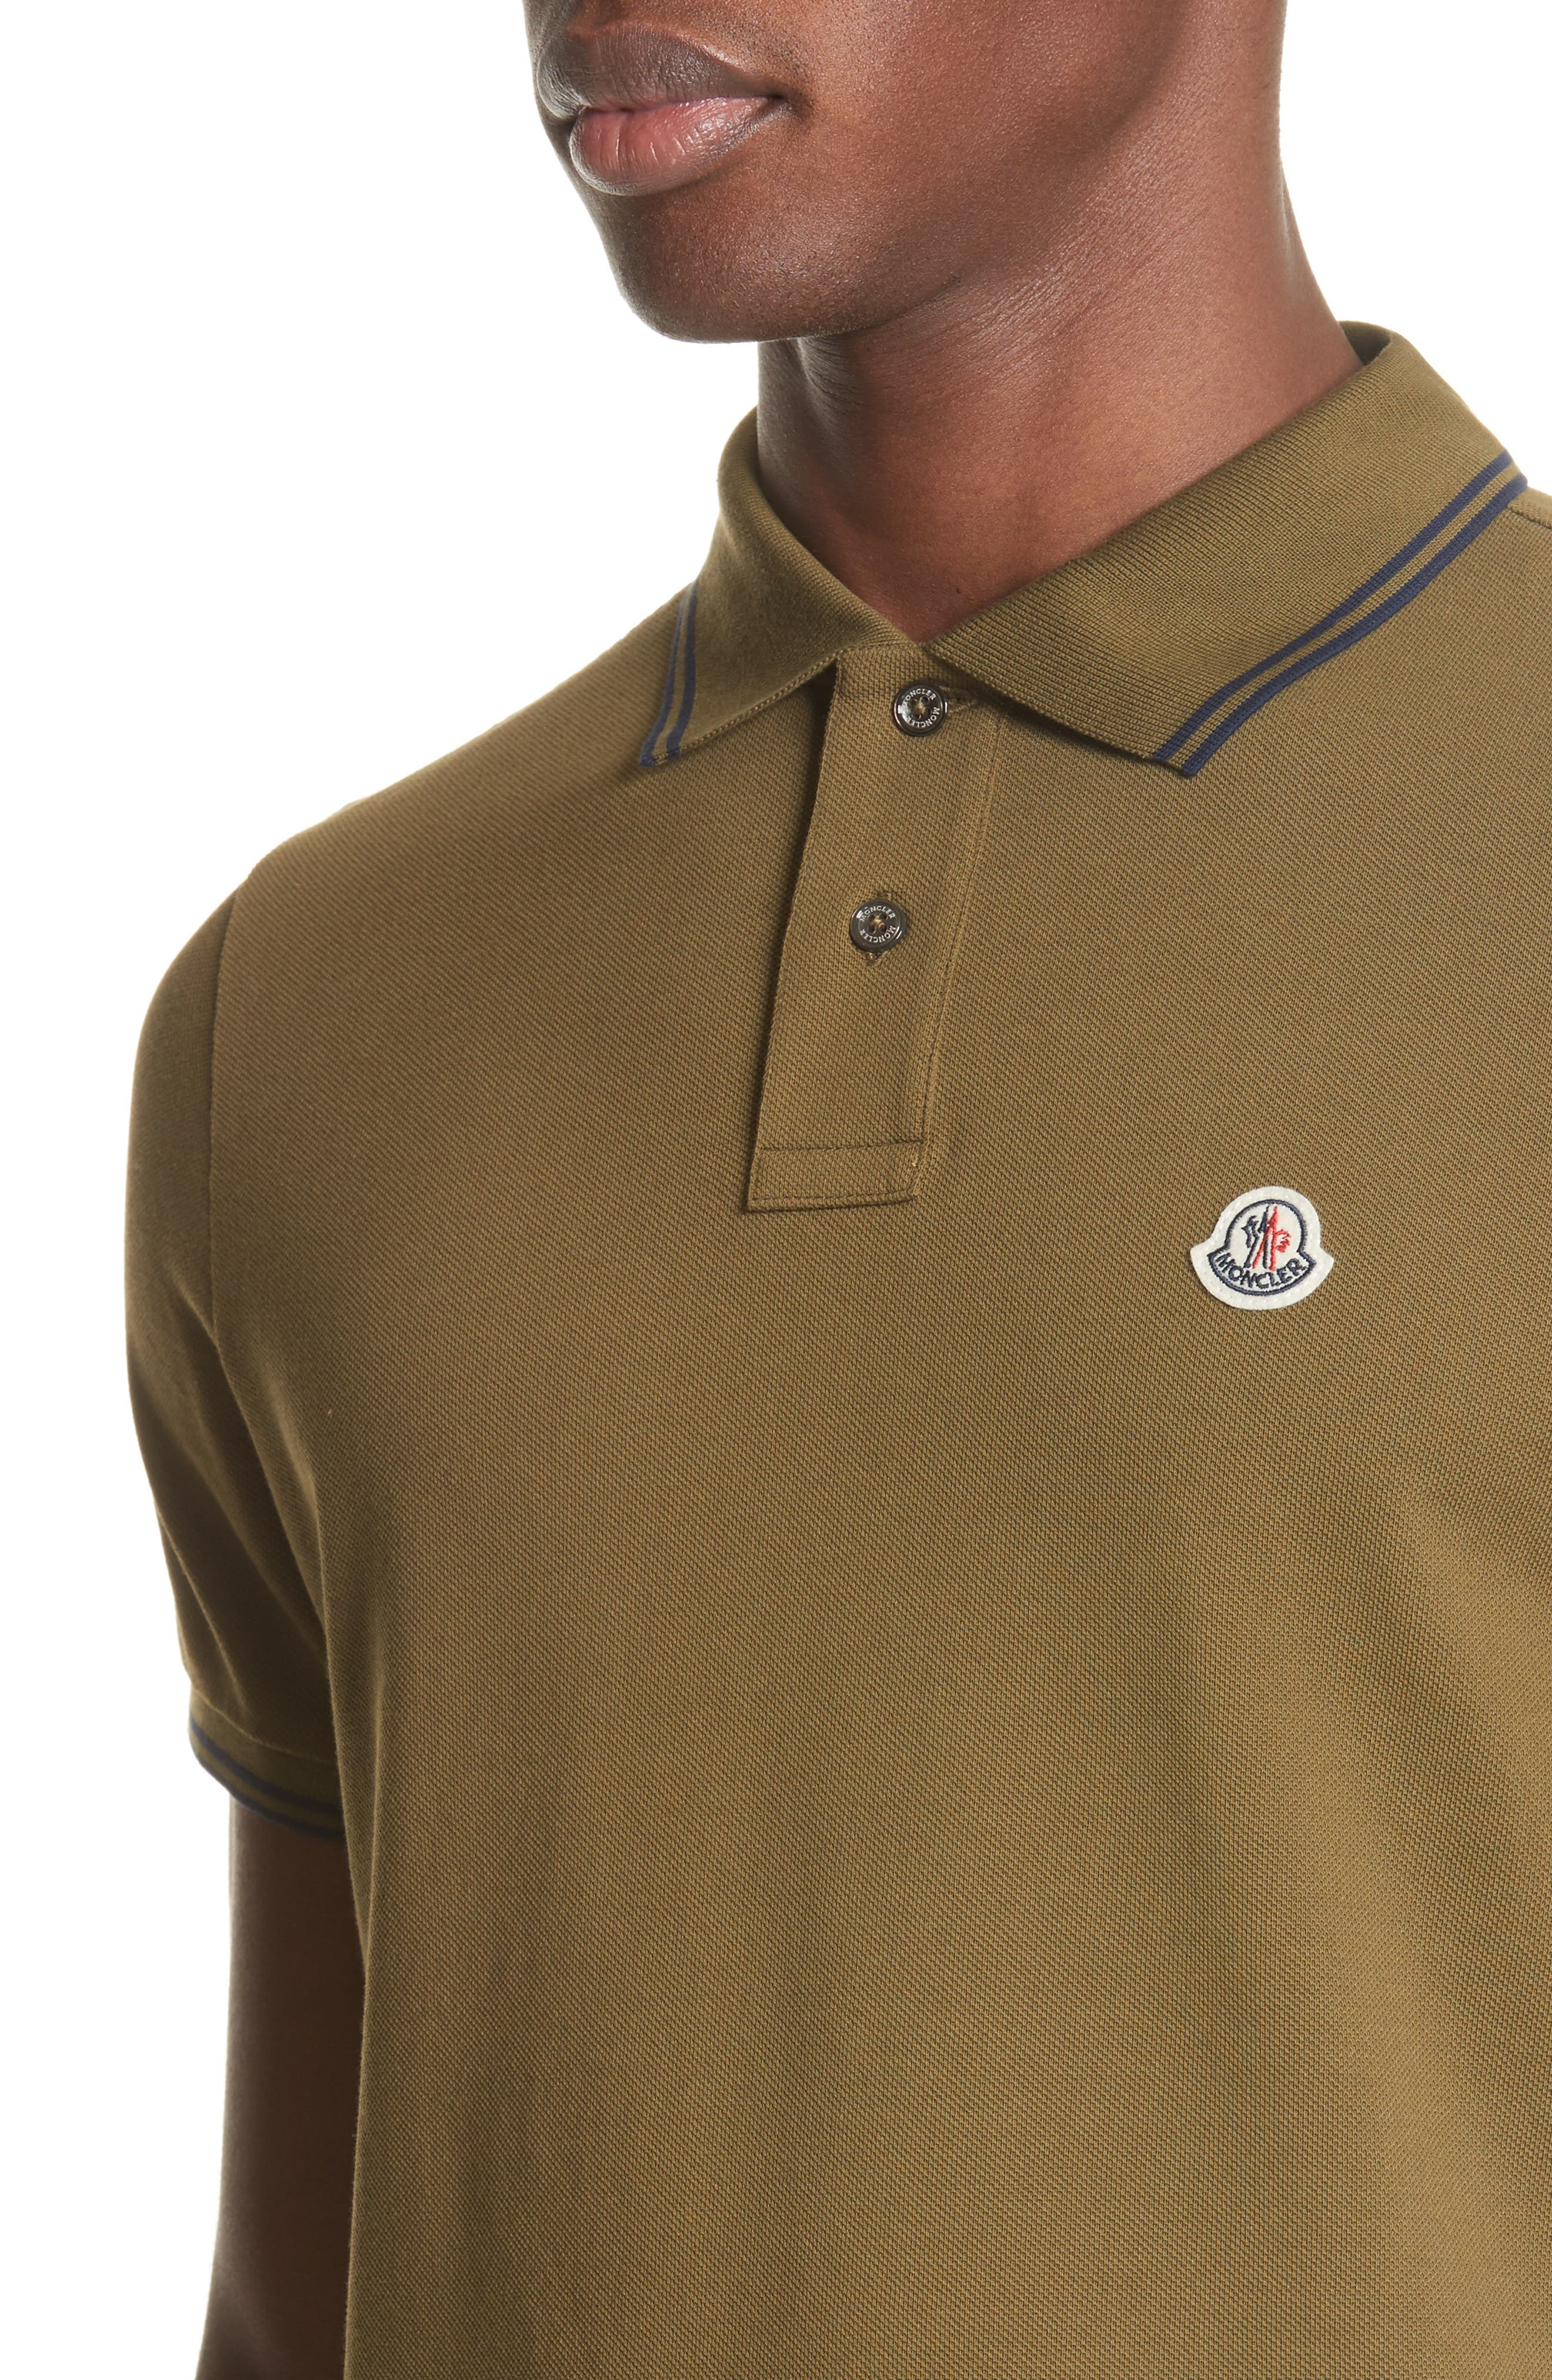 Striped Collar Polo Shirt,                             Alternate thumbnail 4, color,                             Olive